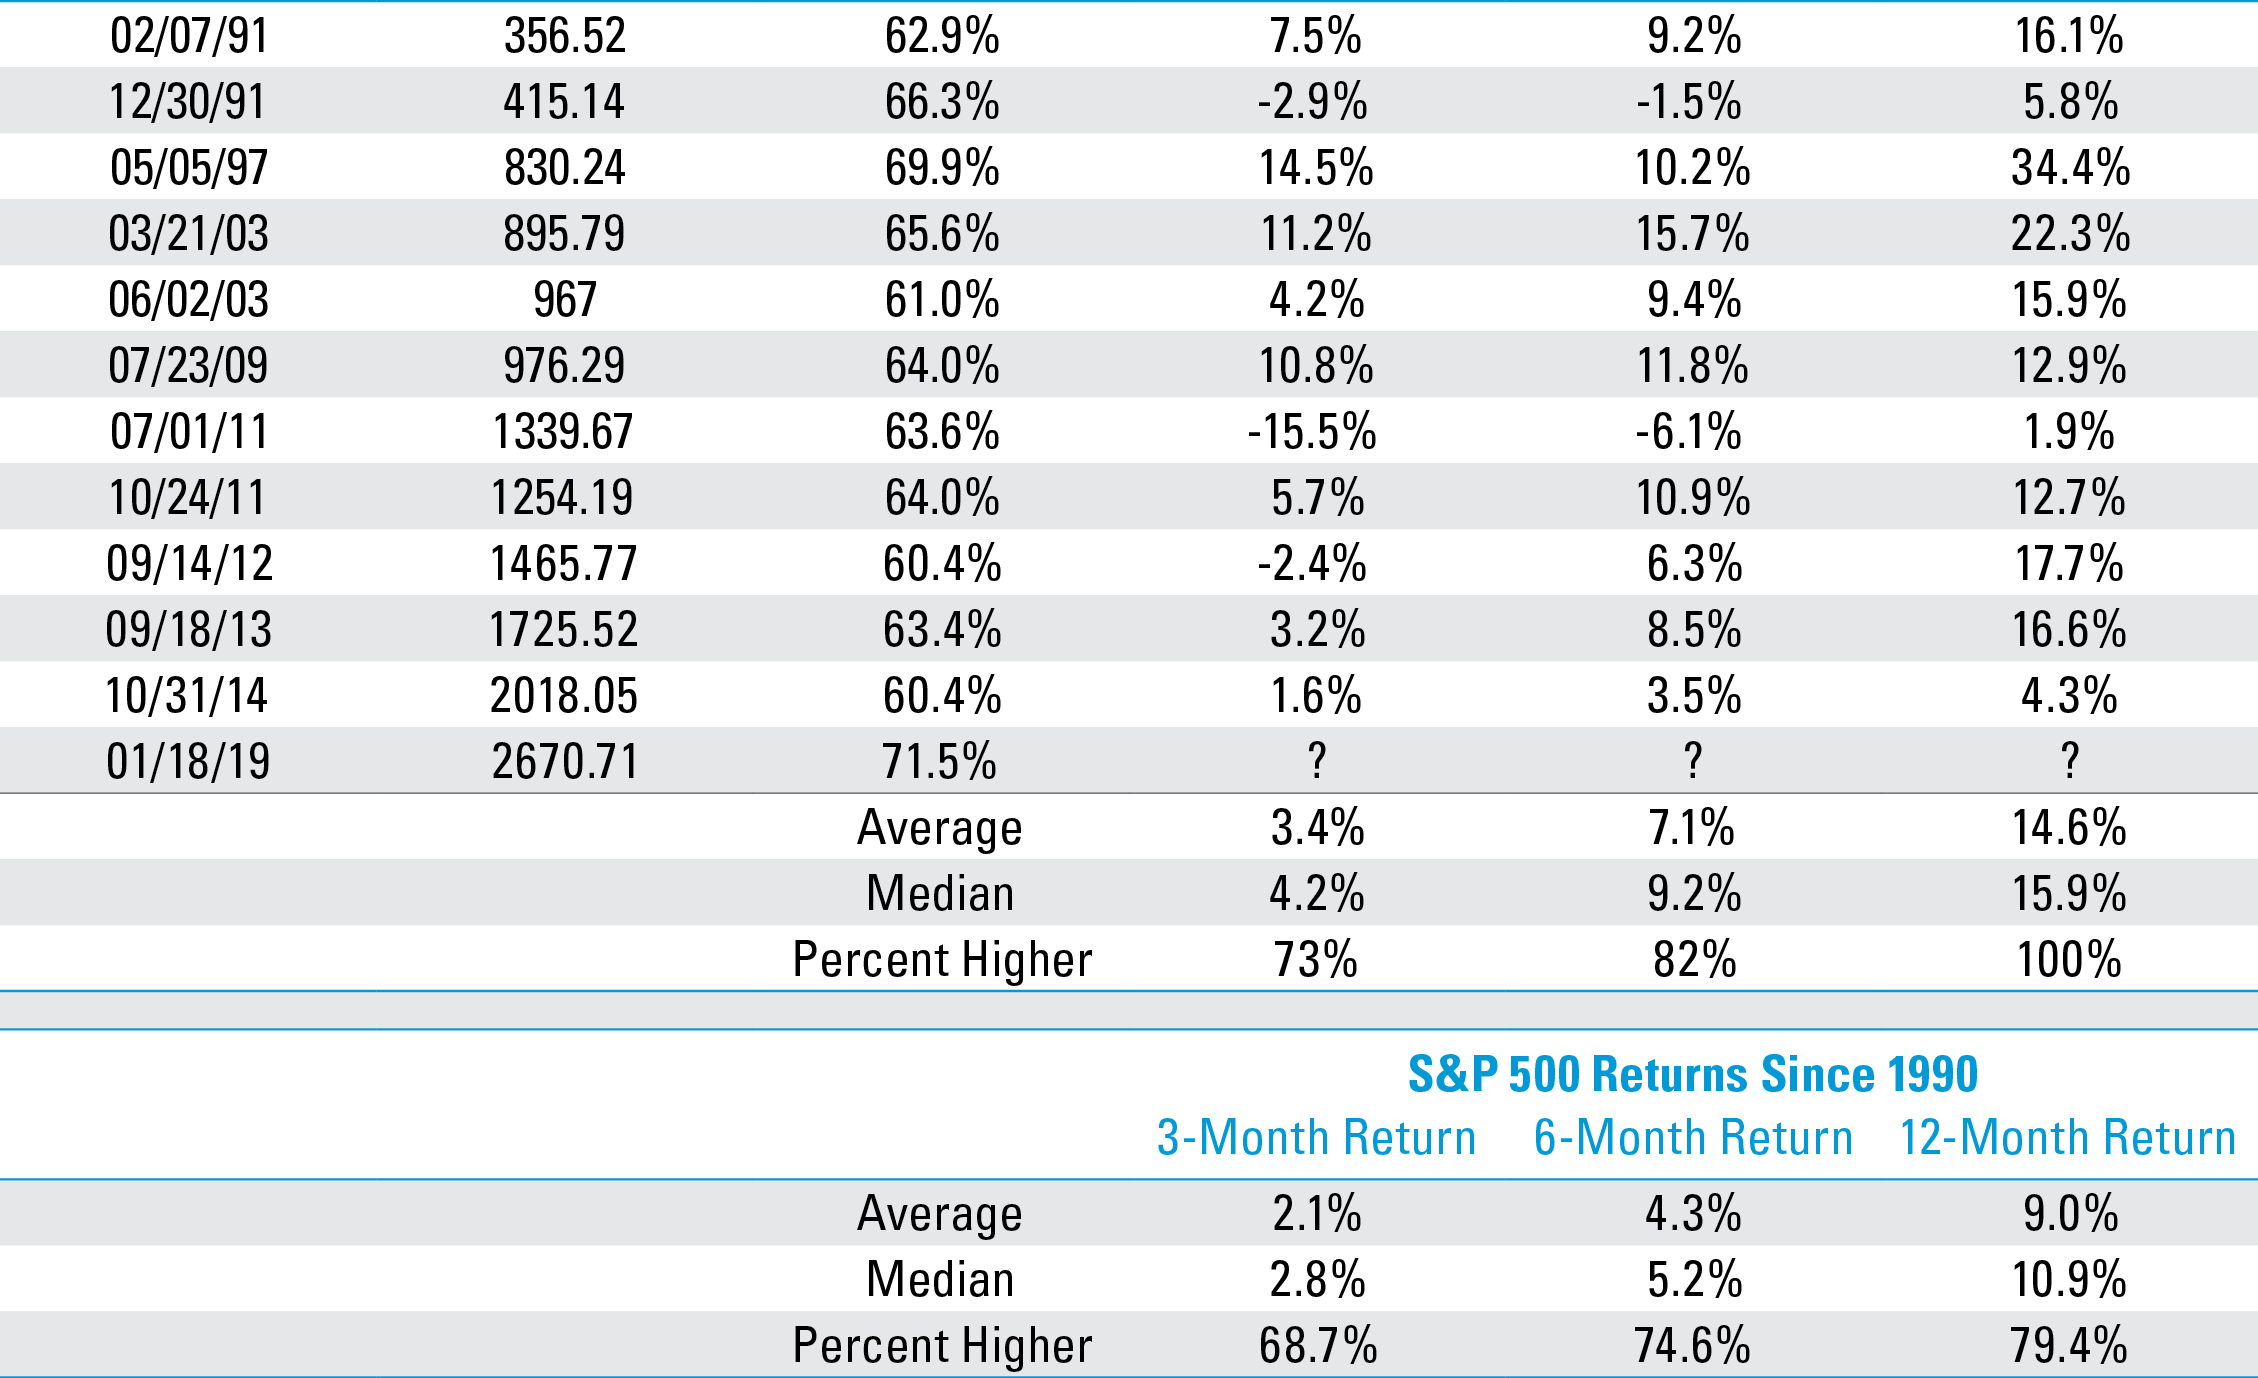 Large Thrusts of S&P 500 Index Component 4-Week Highs Have Led to Strong Future Returns